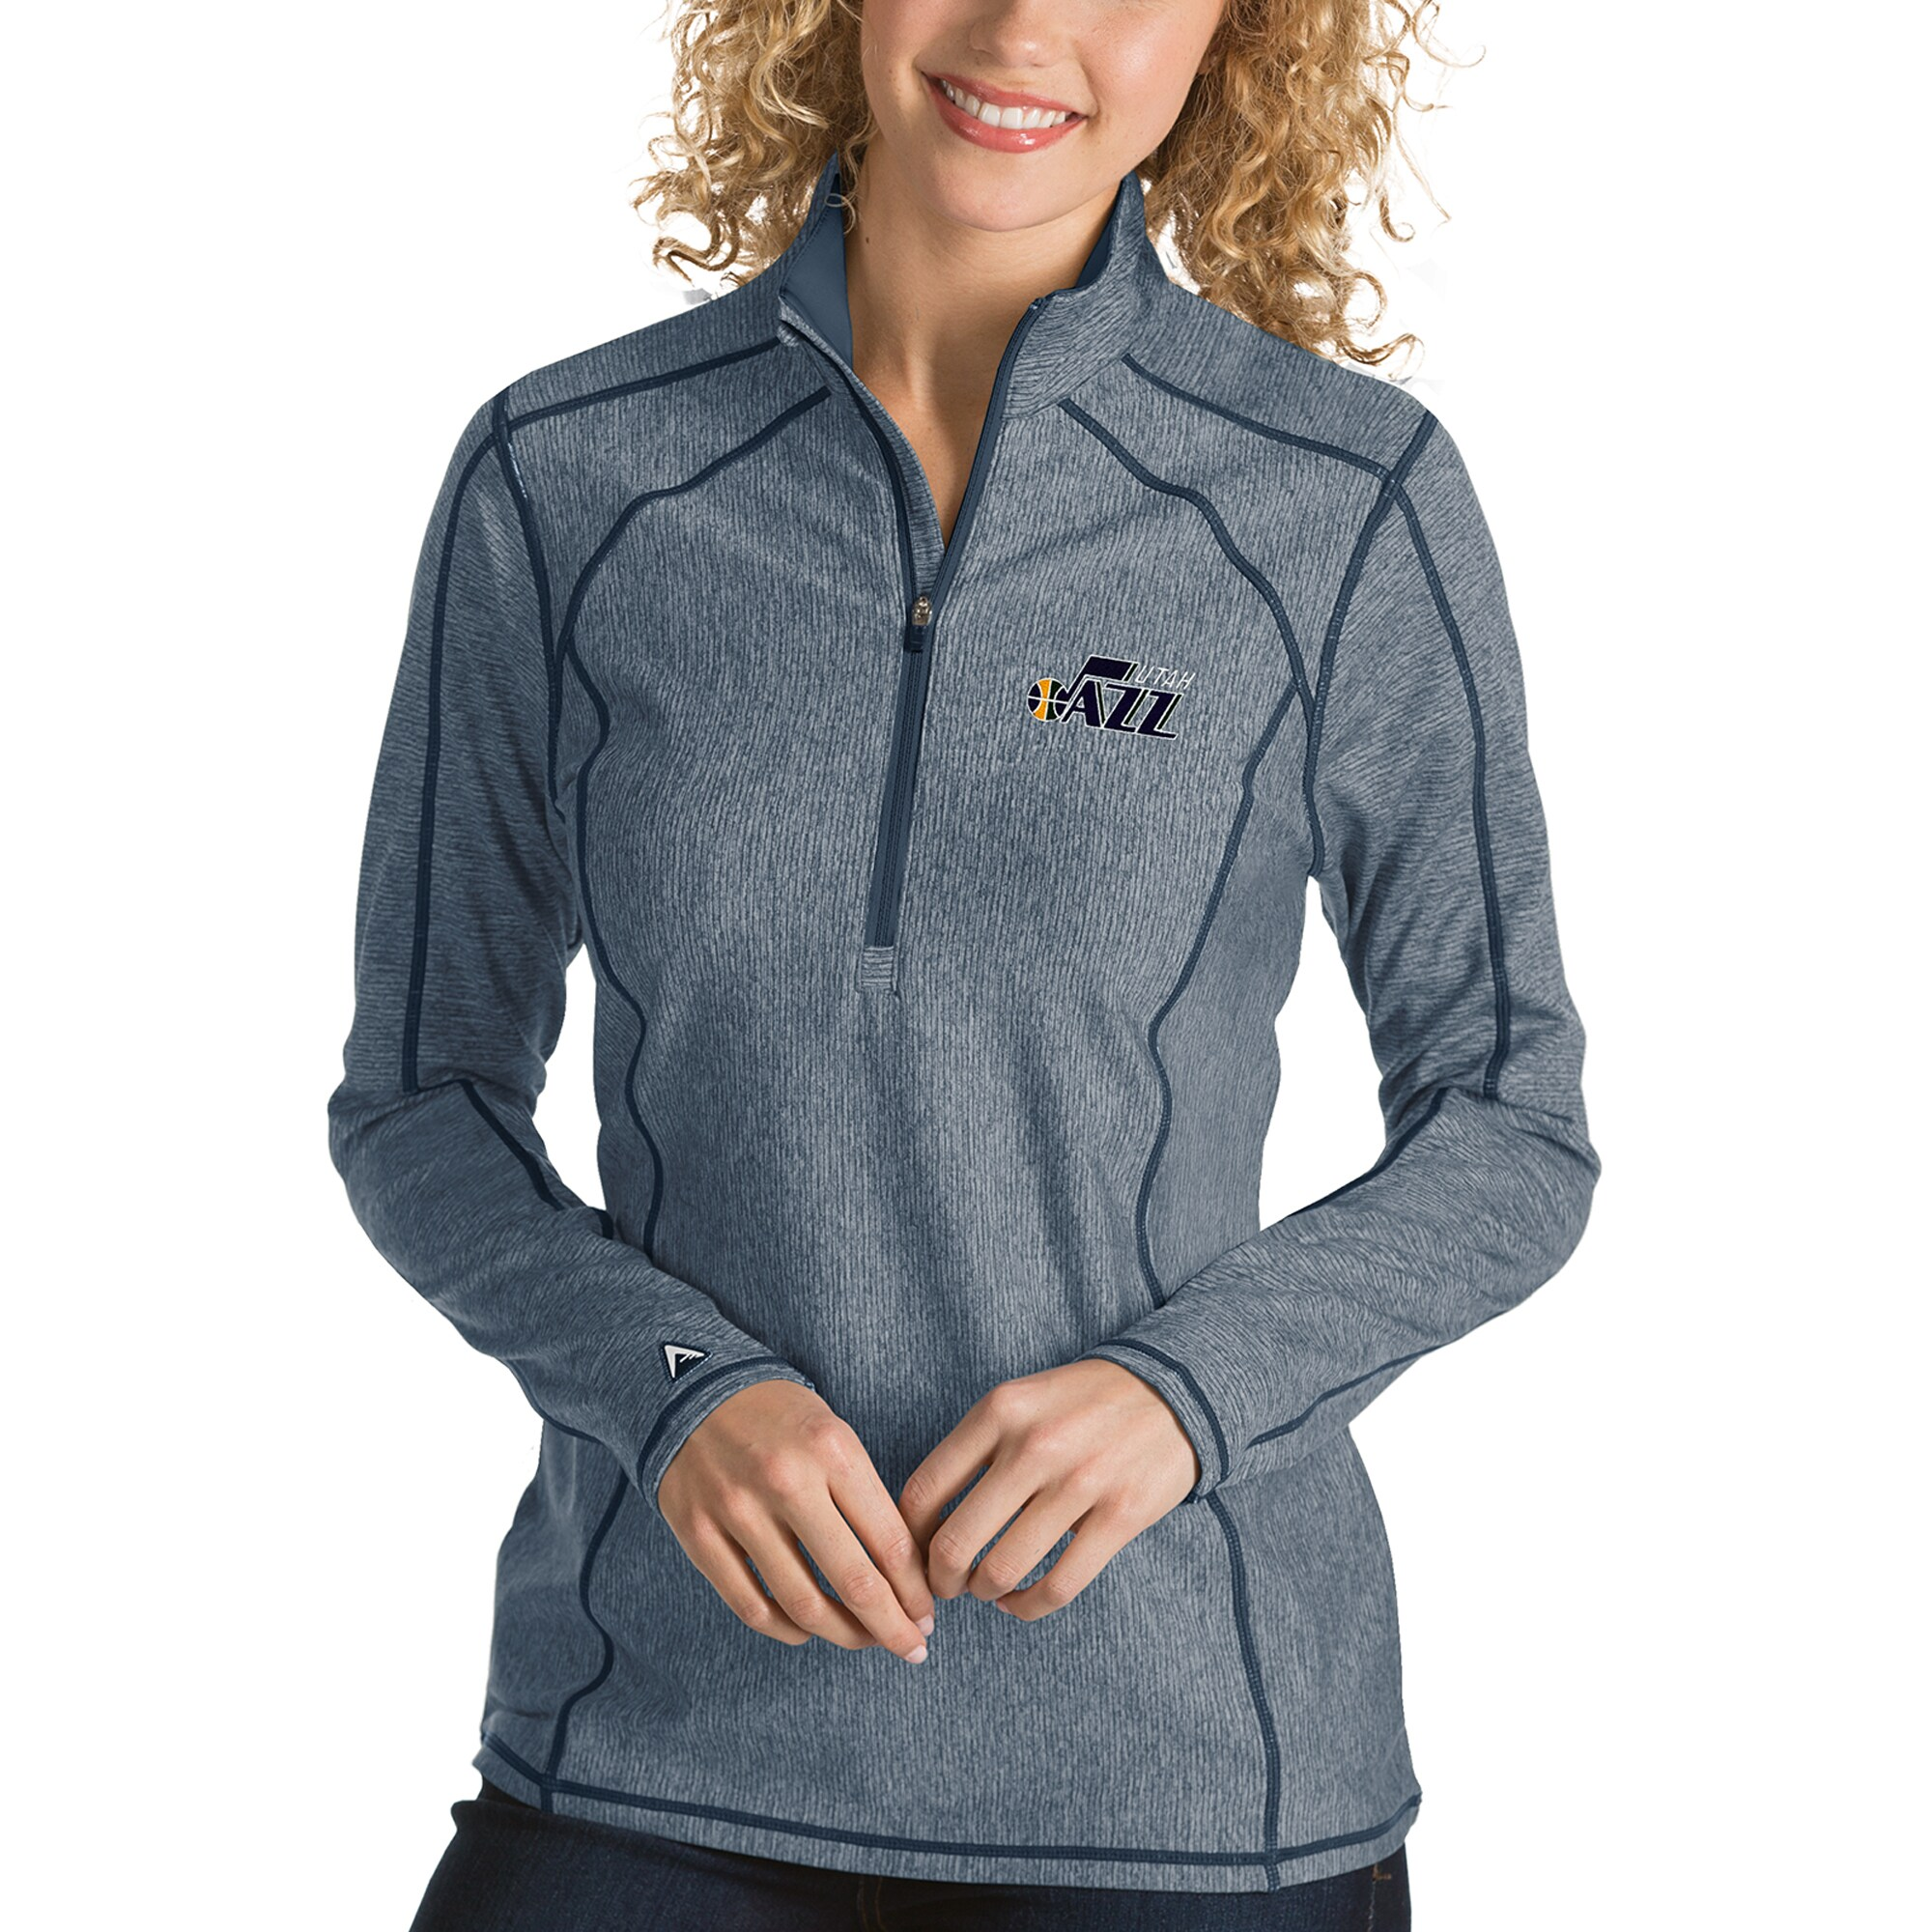 Utah Jazz Antigua Women's Tempo Half-Zip Pullover Jacket - Heather Navy